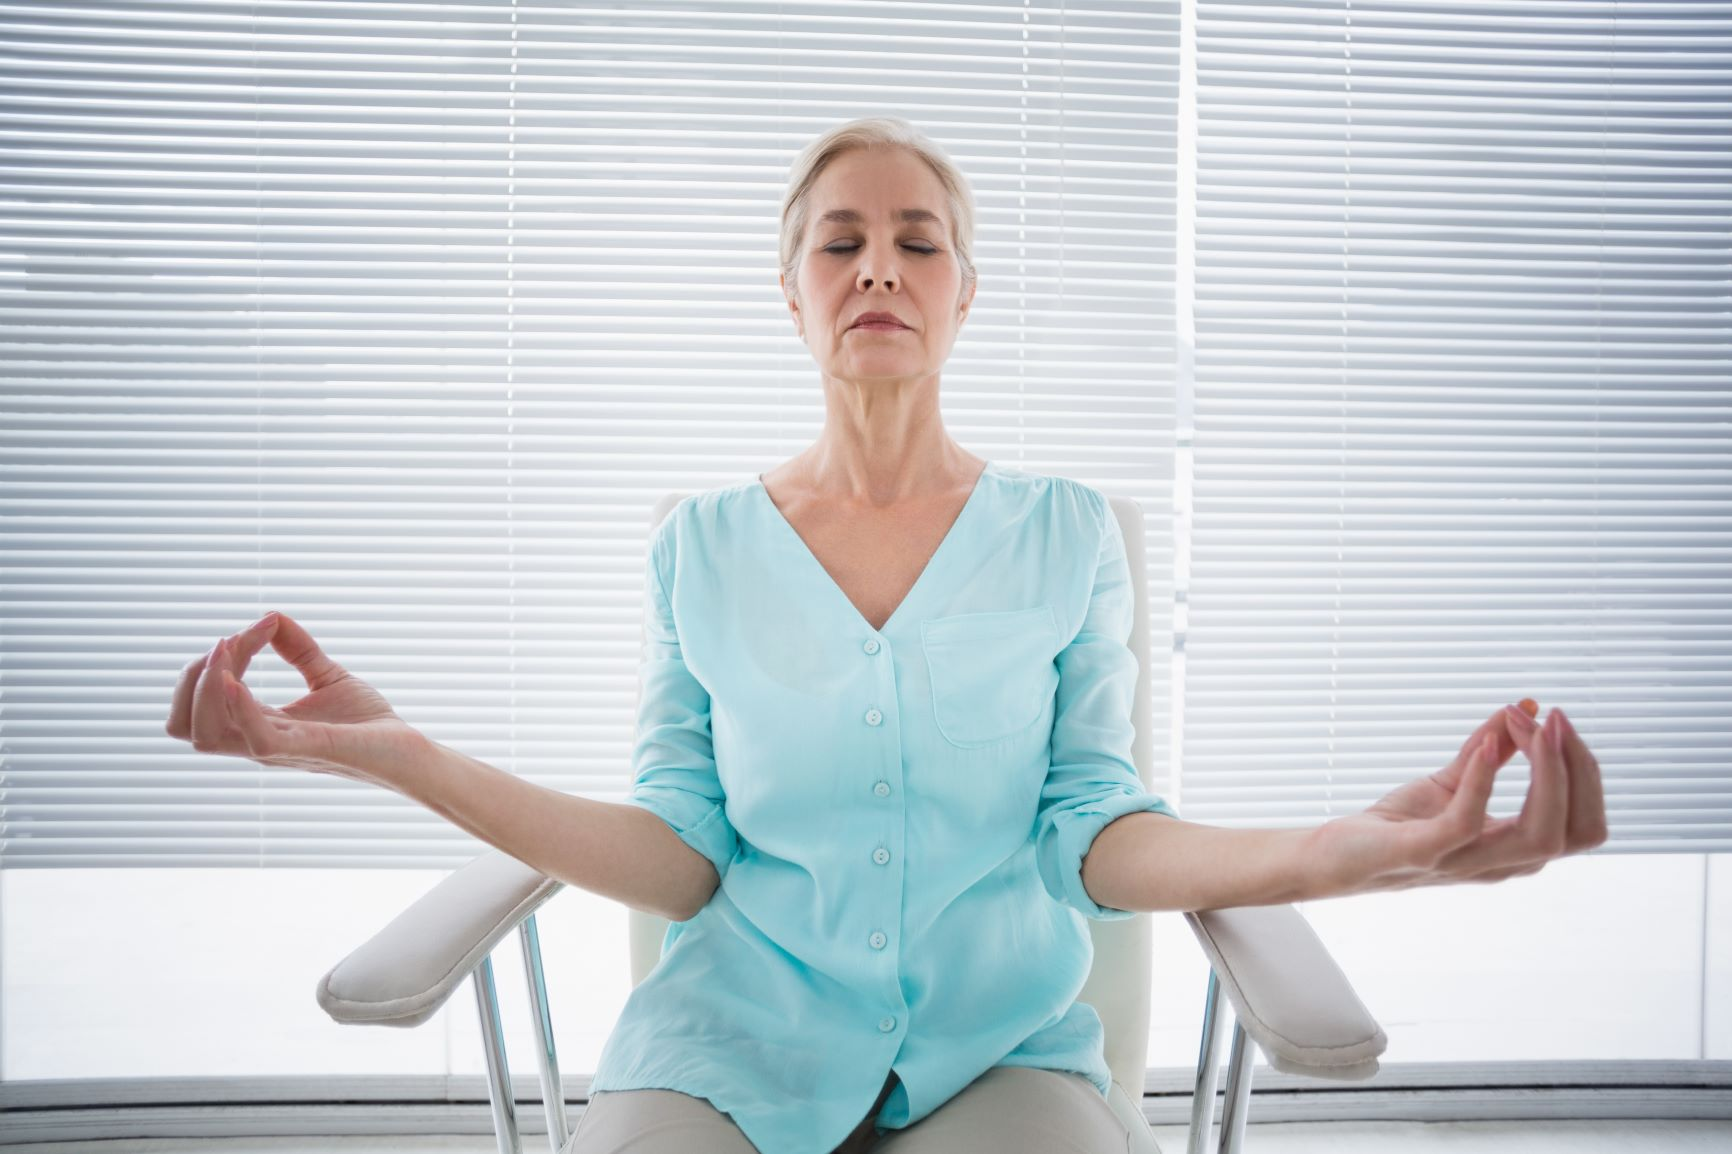 Chair Yoga and Arthritic Movement: Get Moving @ Your Library